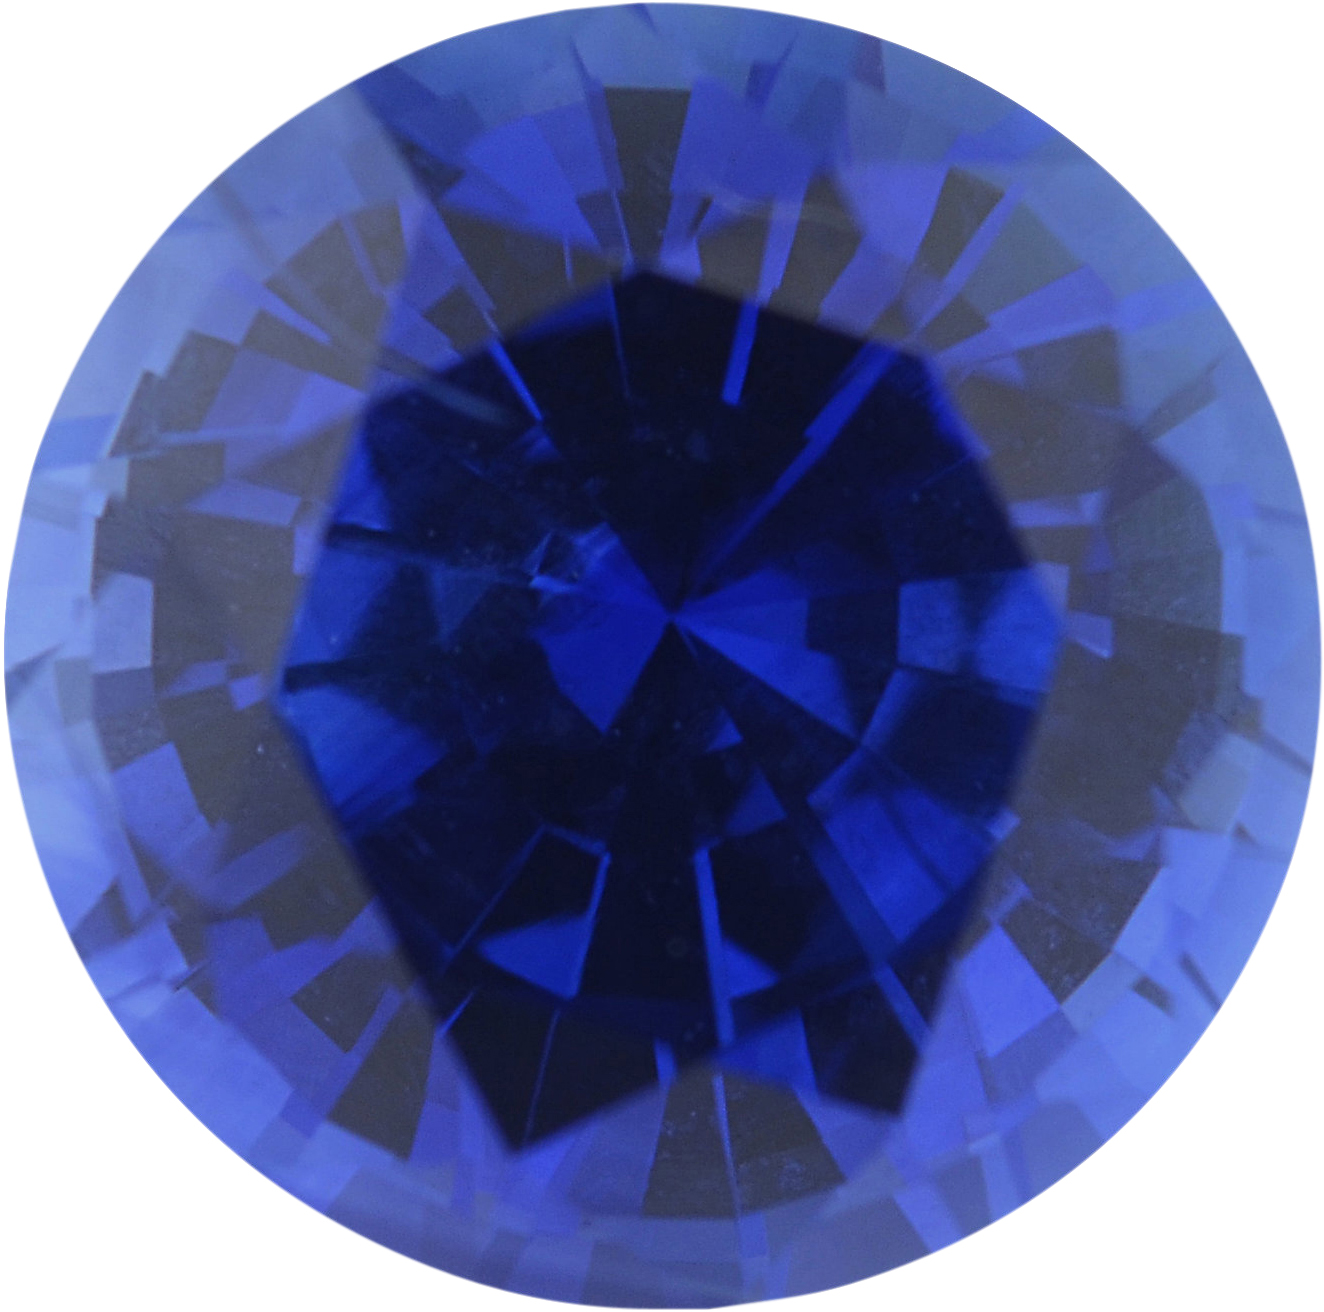 Magnificent Sapphire Loose Gem in Round Cut, Medium Violet Blue, 6.96 mm, 1.69 Carats